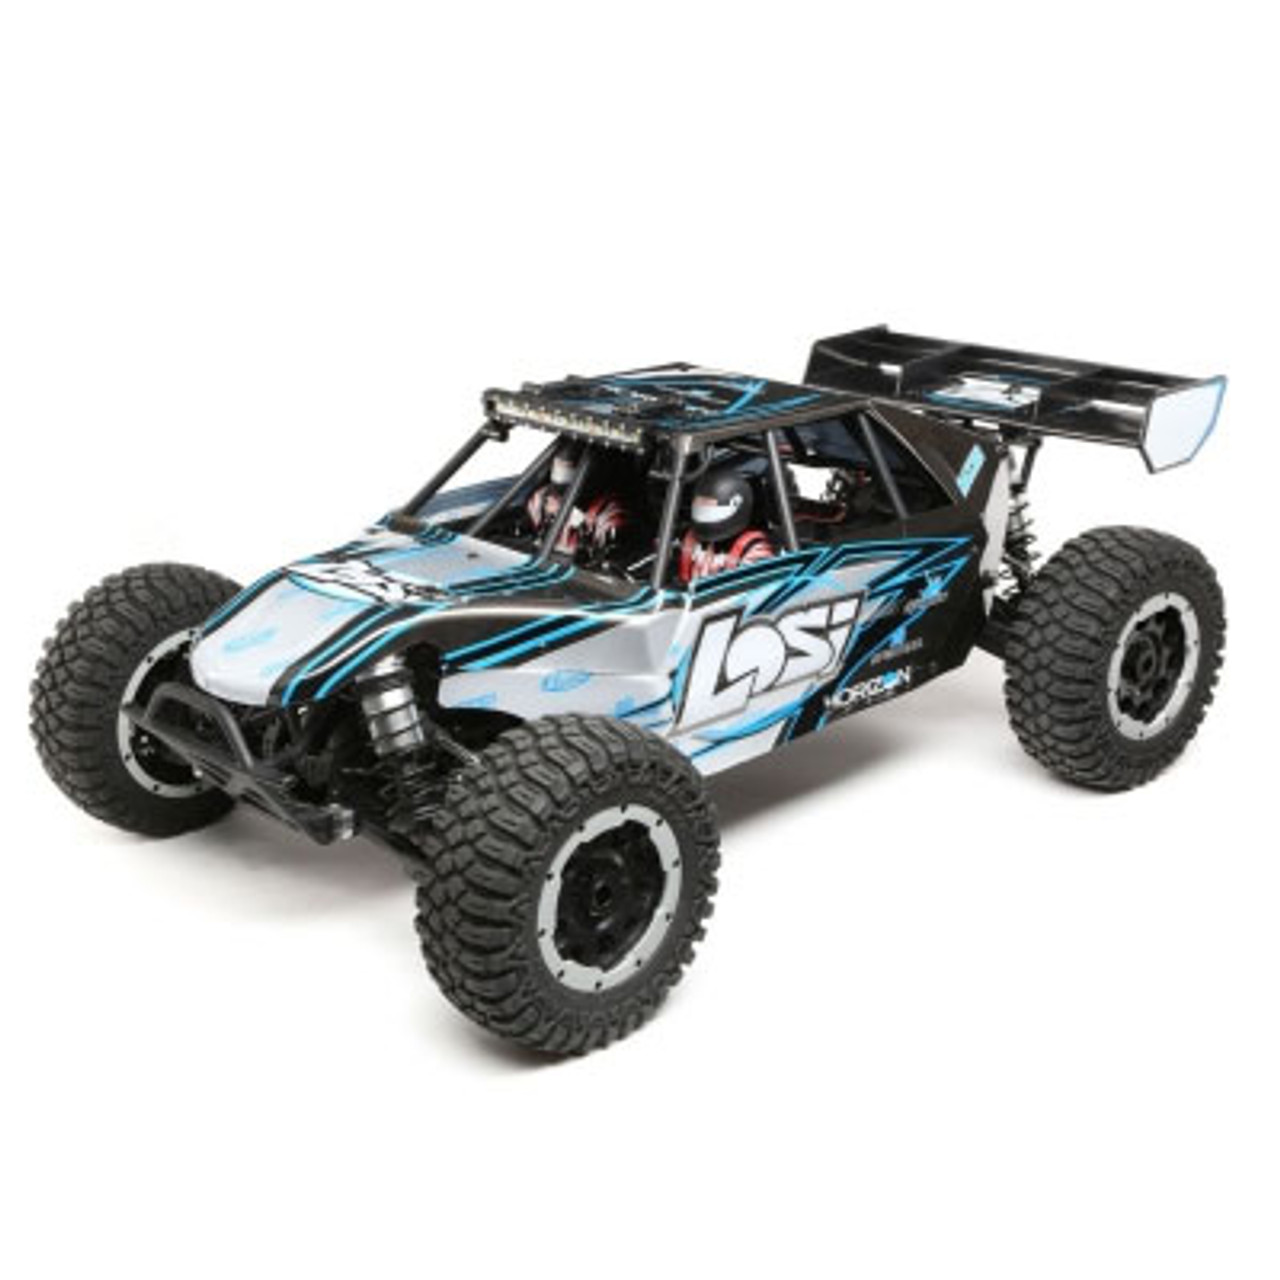 Fits the Losi Desert Buggy XL and new K&N gas trucks as well as the new DBXL-E Electric!